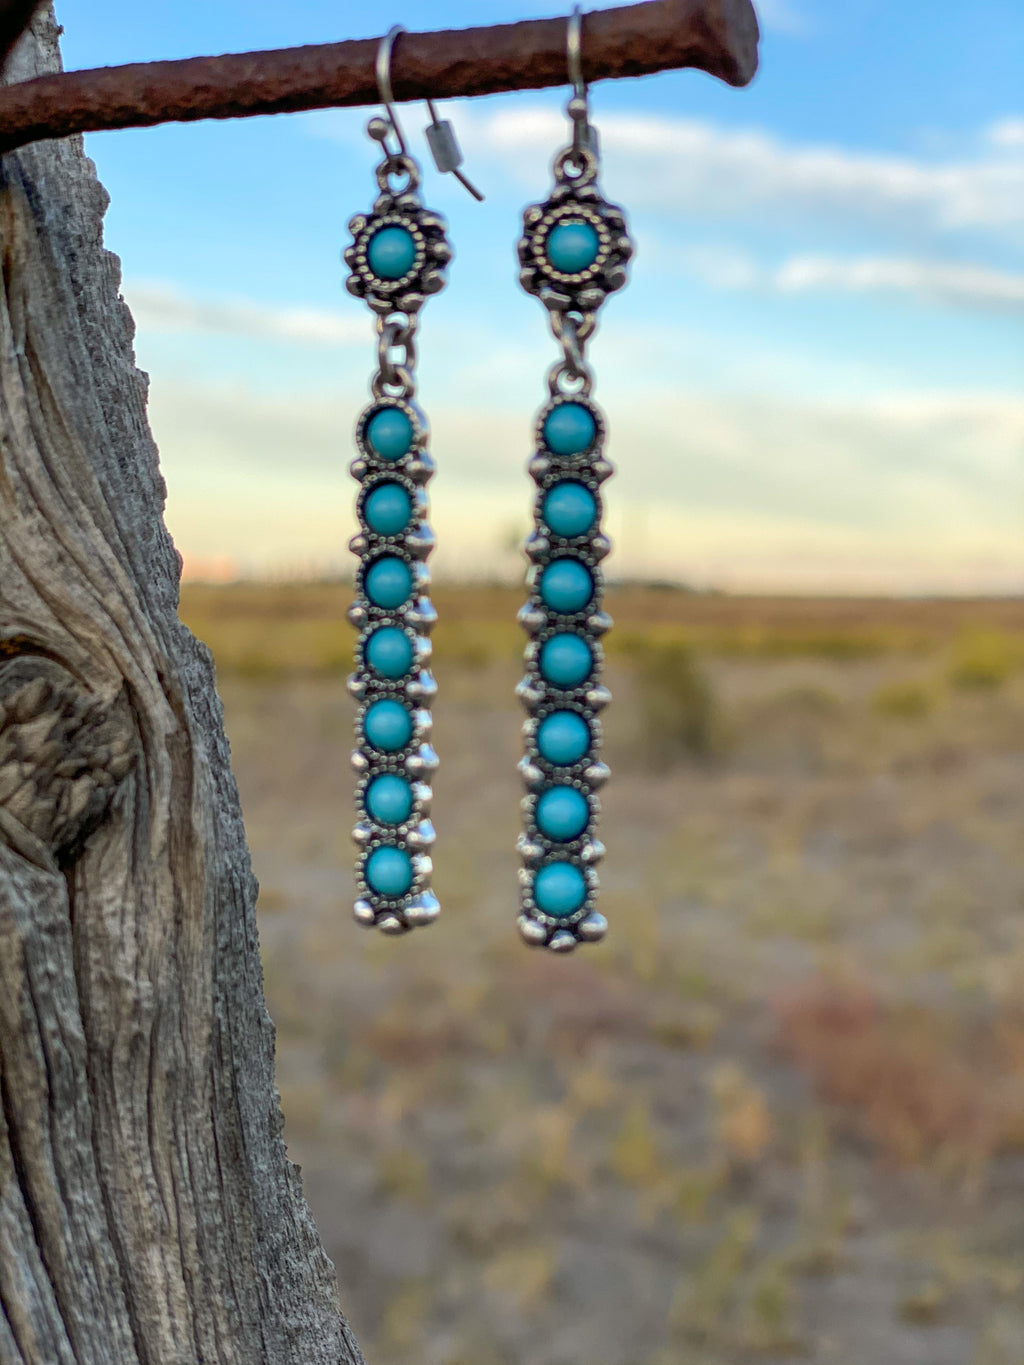 The Silver Turquoise Southwest Drop Earrings